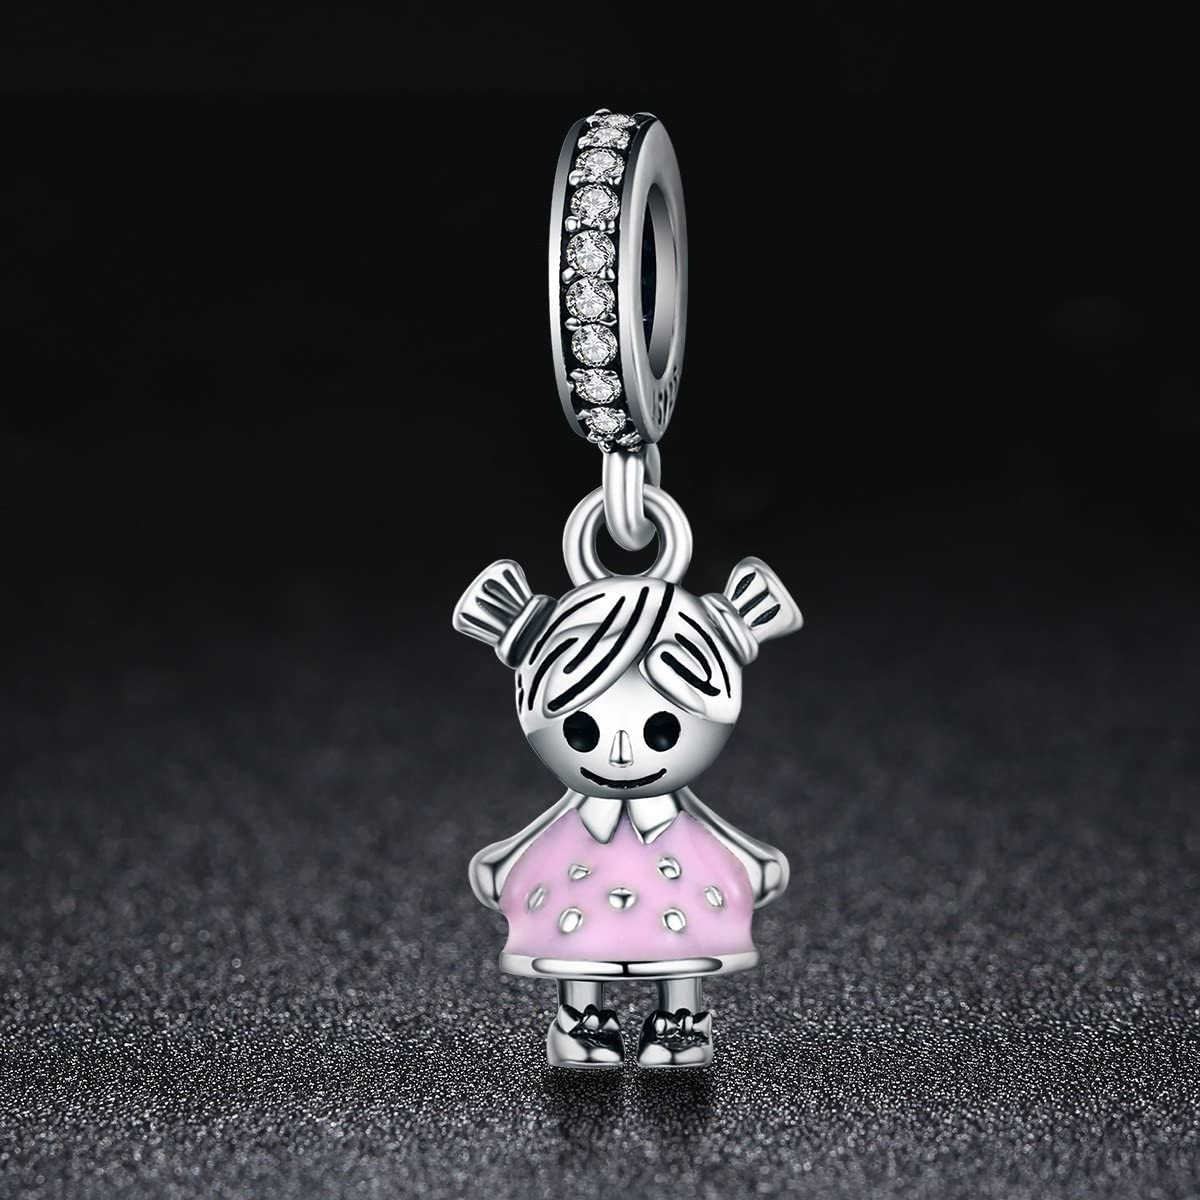 My Little Boys Charms 925 Sterling Silver Boys Beads Charms Mom Family Charms for Charm Bracelets